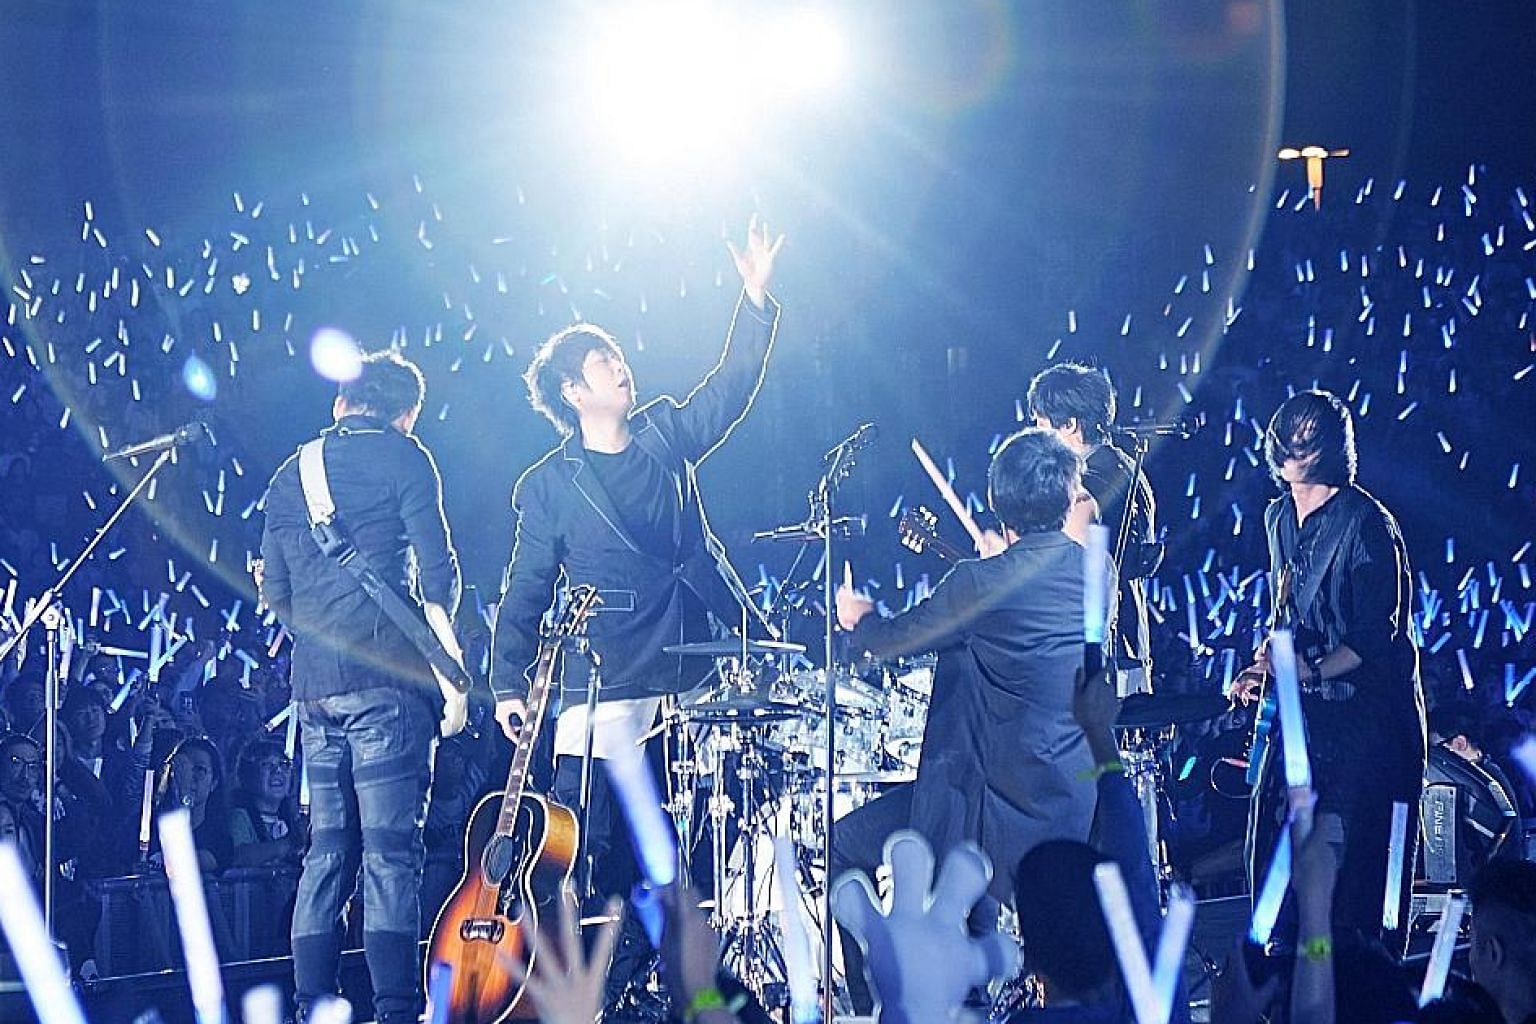 Mayday will hold their concert at the National Stadium on Feb 27 next year.